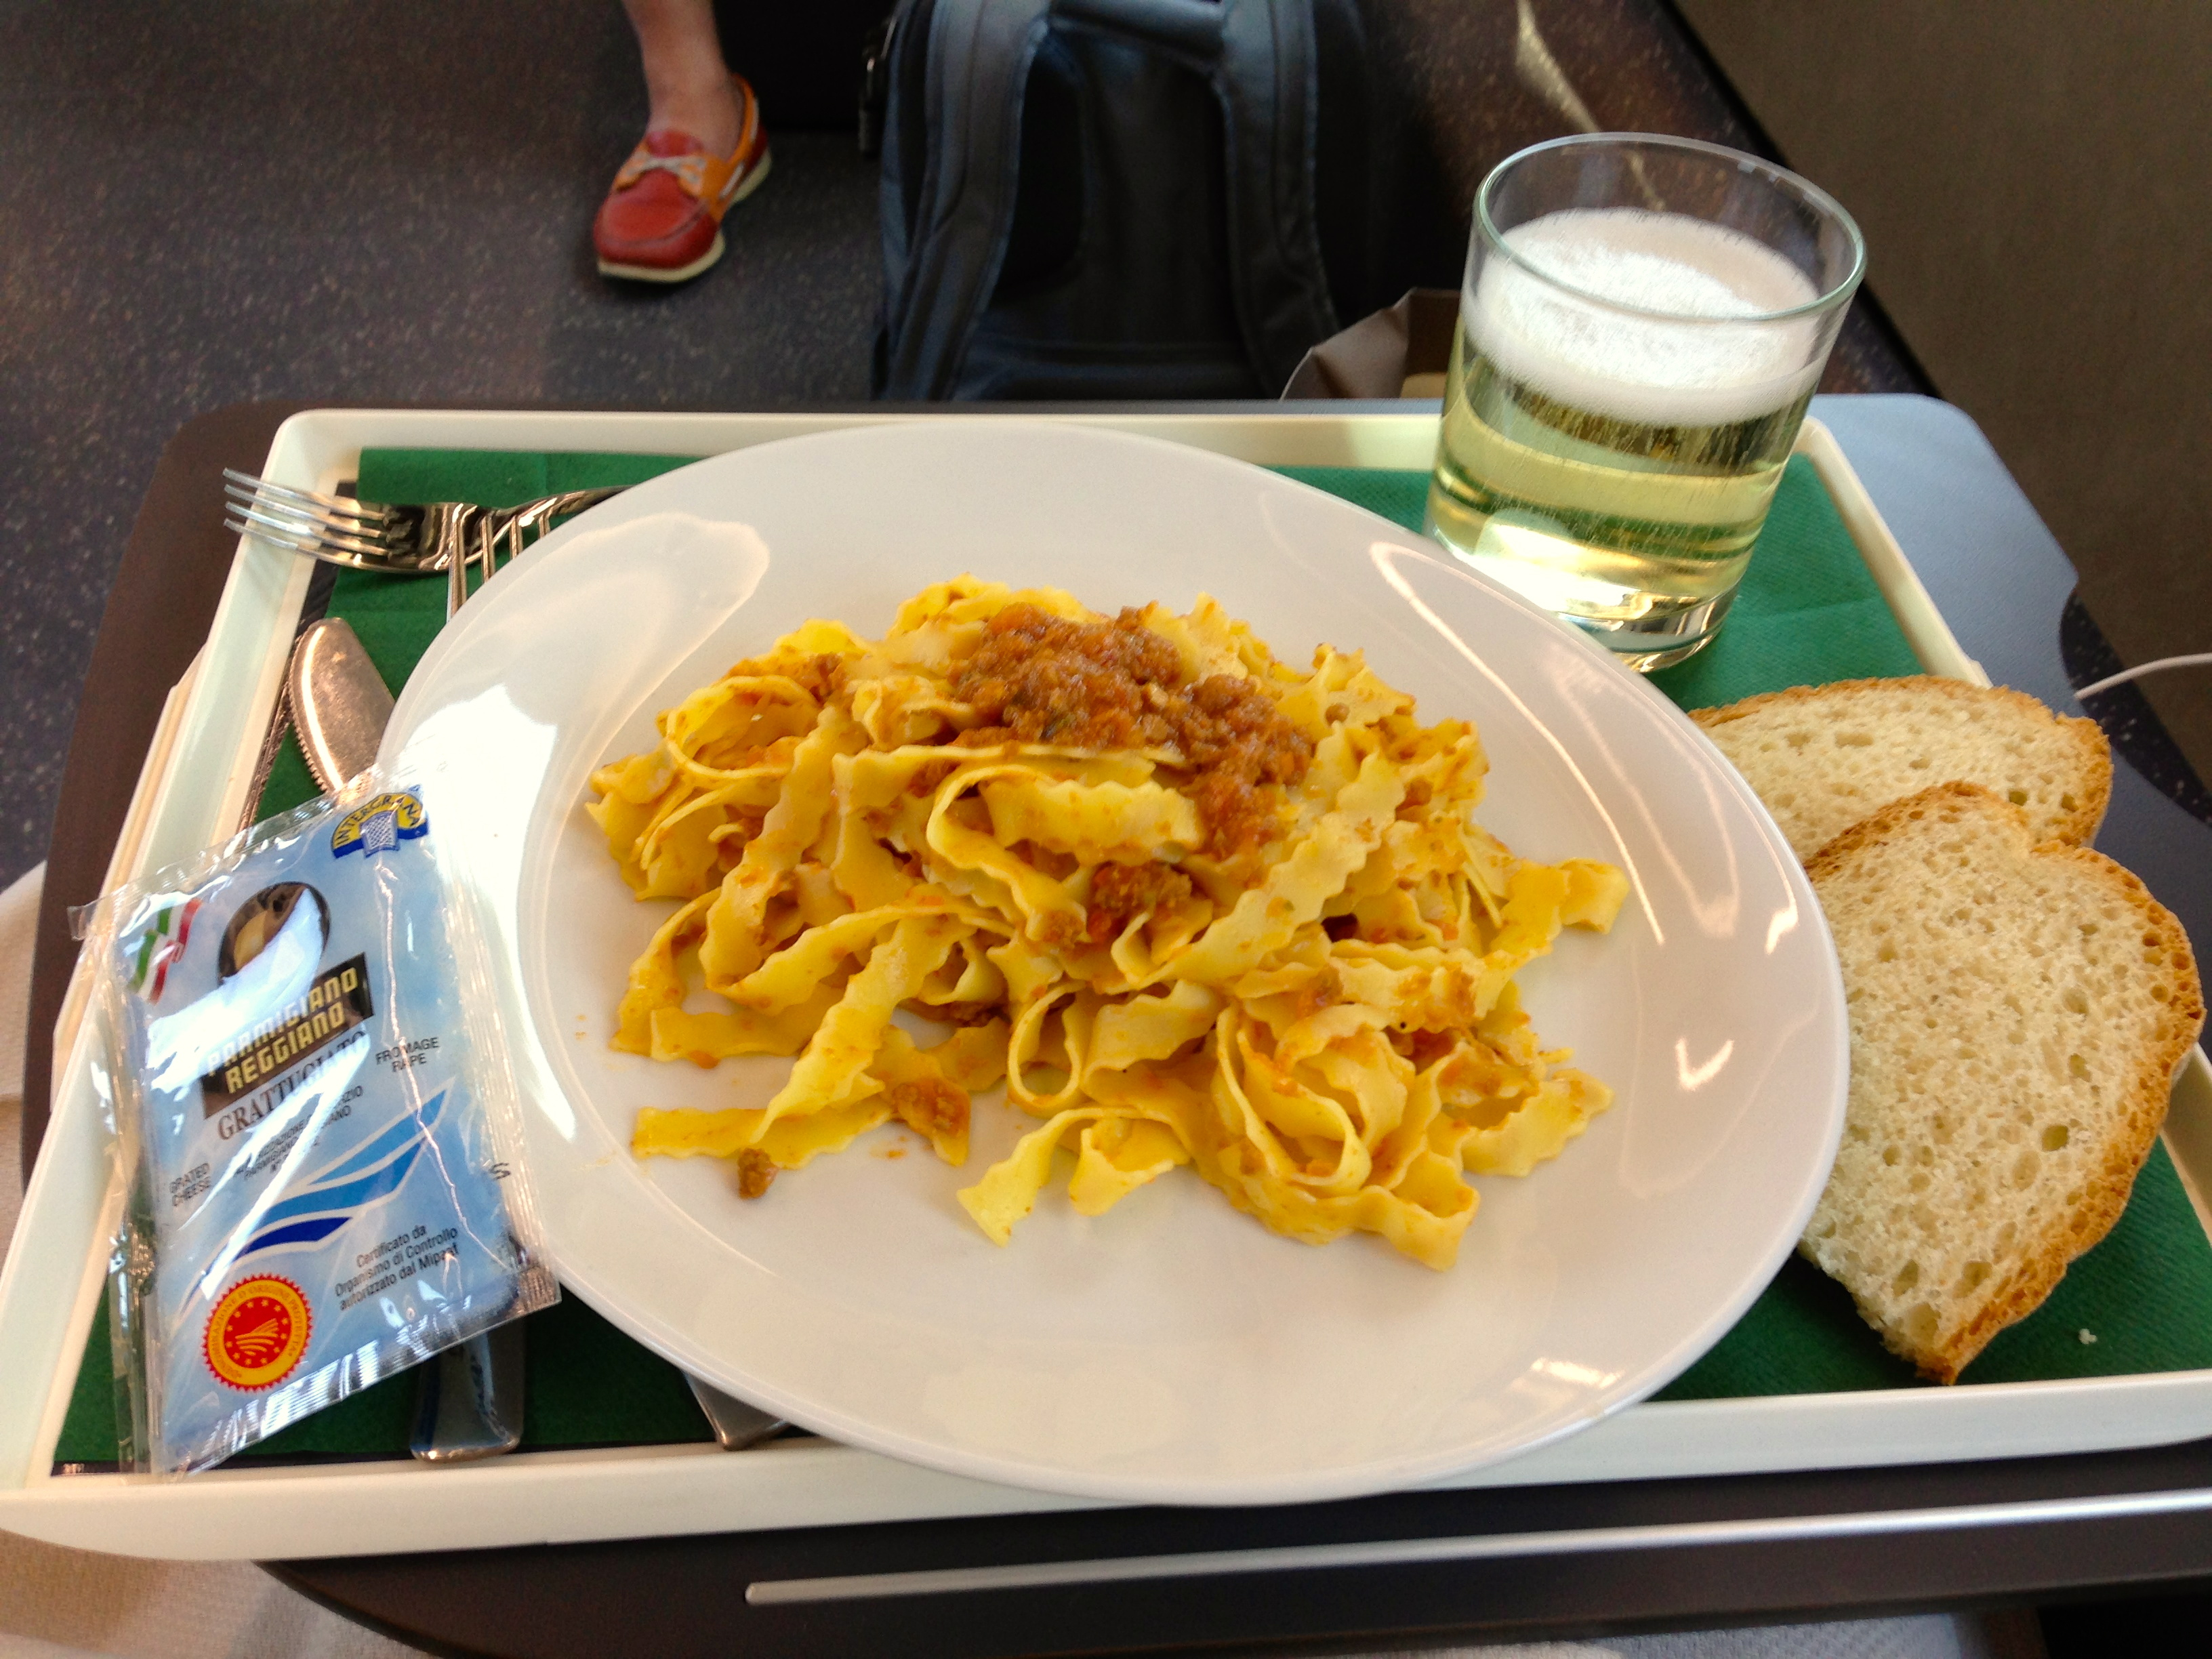 Trenitalia Frecciarossa Executive Class Meal